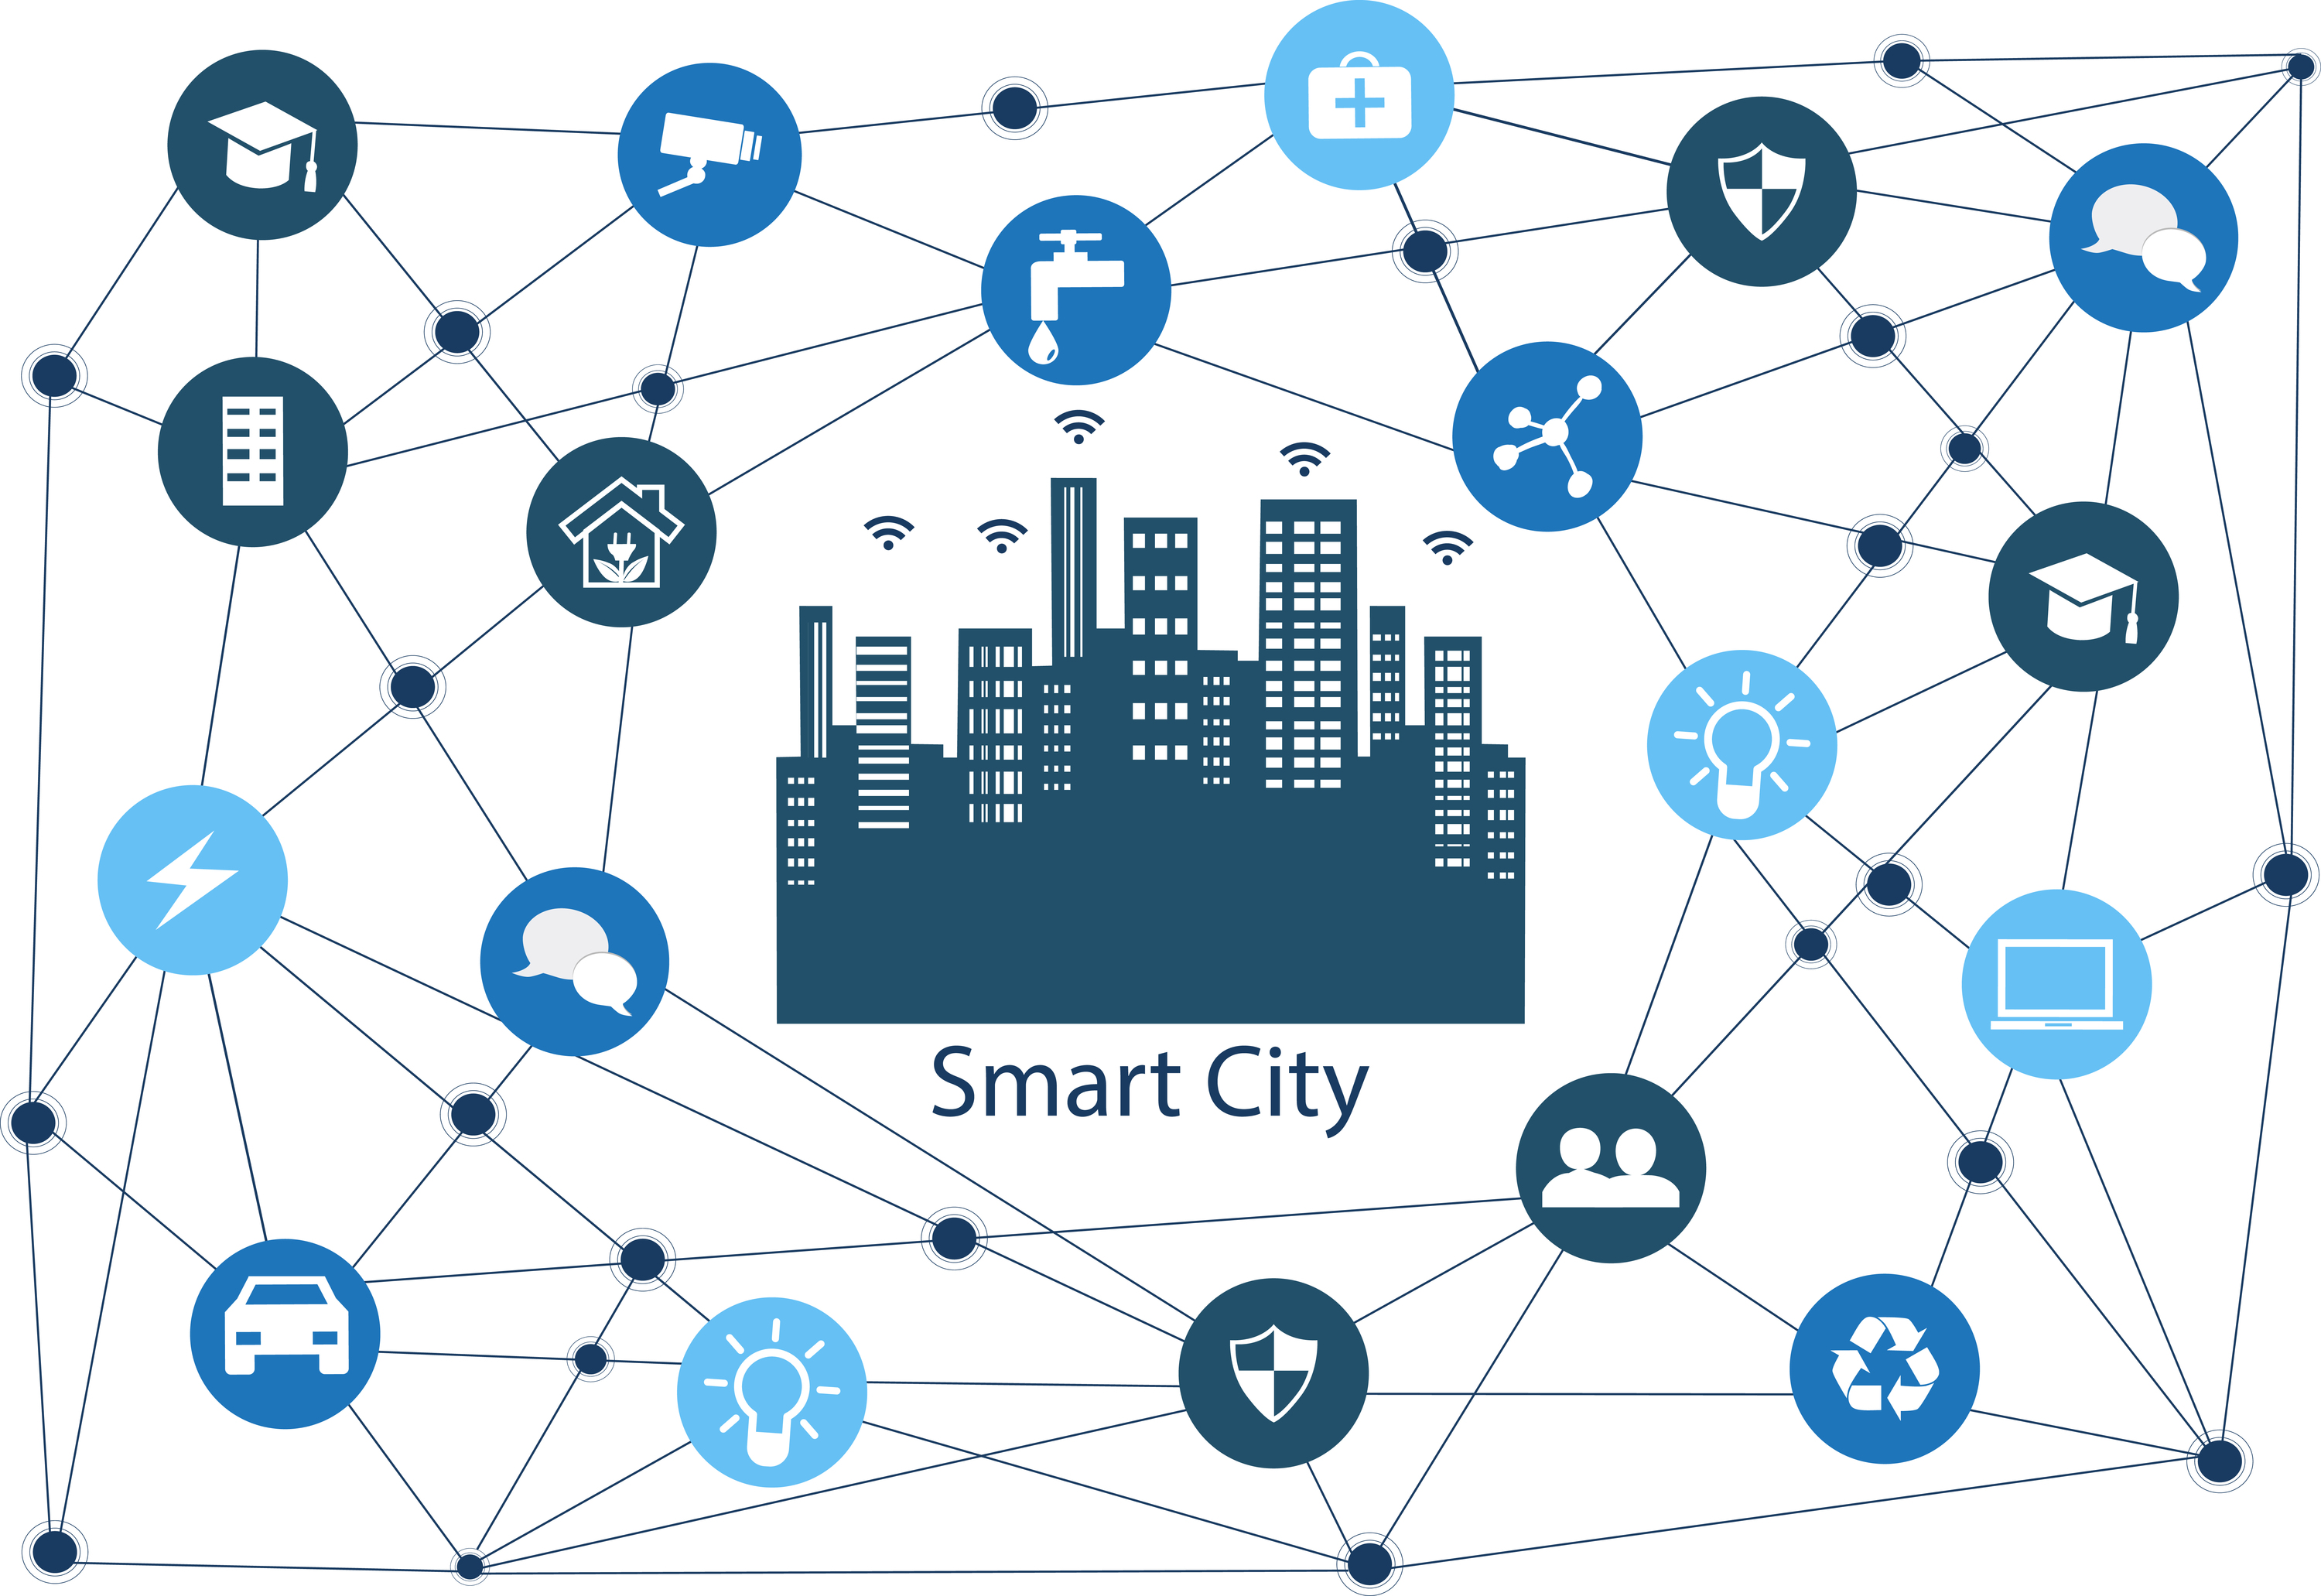 Smart City Financial Engineering